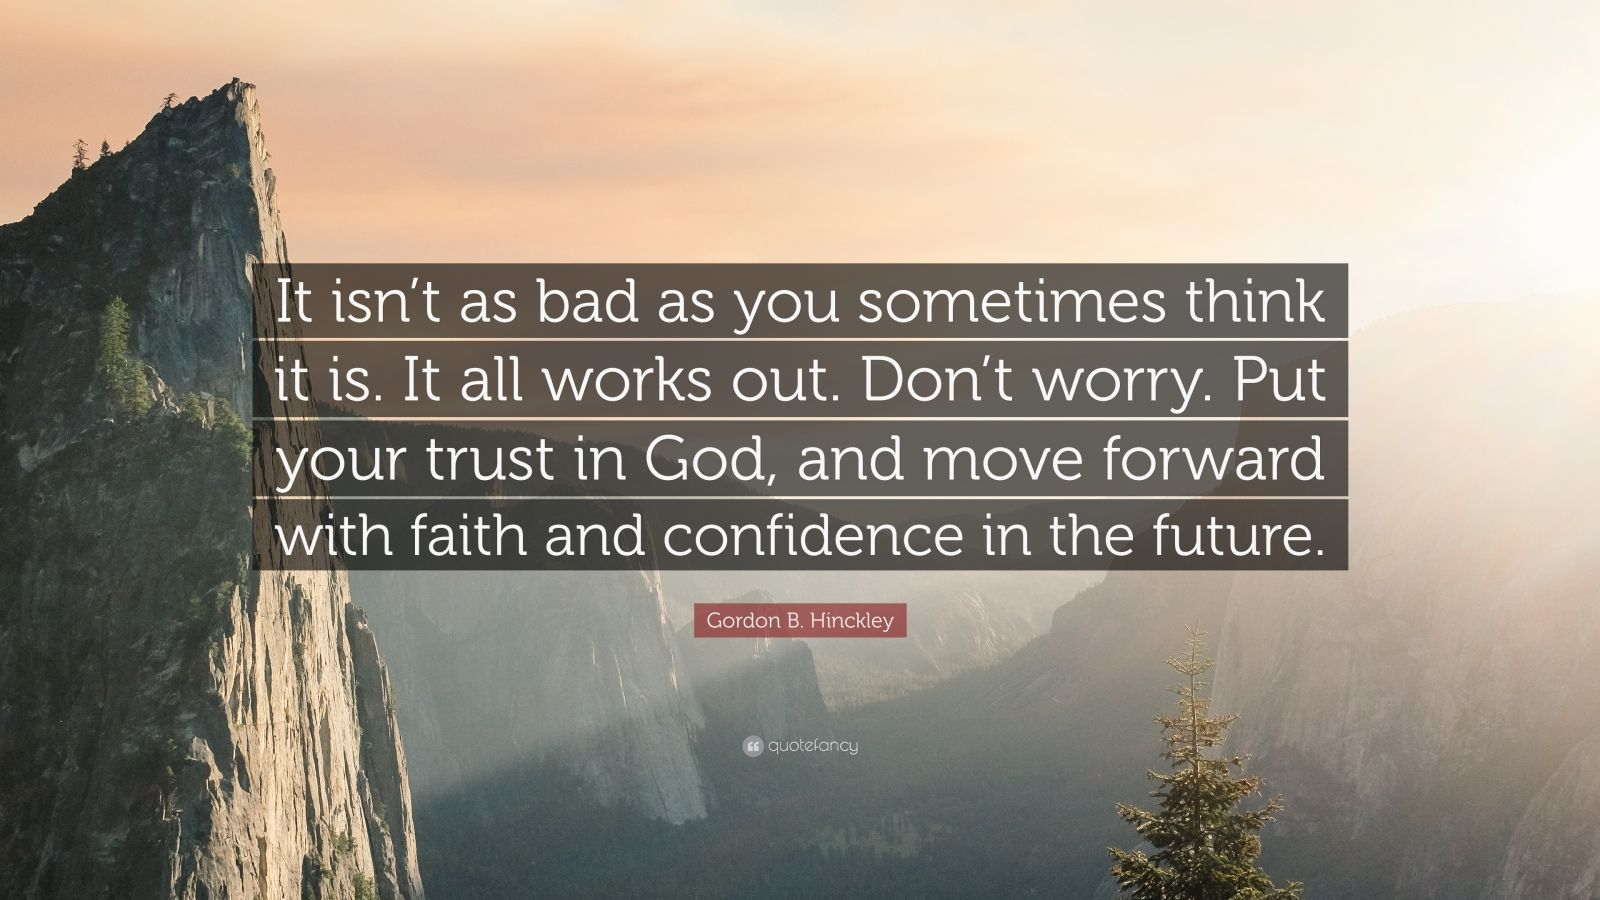 """Gordon B. Hinckley Quote: """"It isn't as bad as you sometimes think it is. It all works out. Don't worry. Put your trust in God, and move forward with faith and confidence in the future."""""""